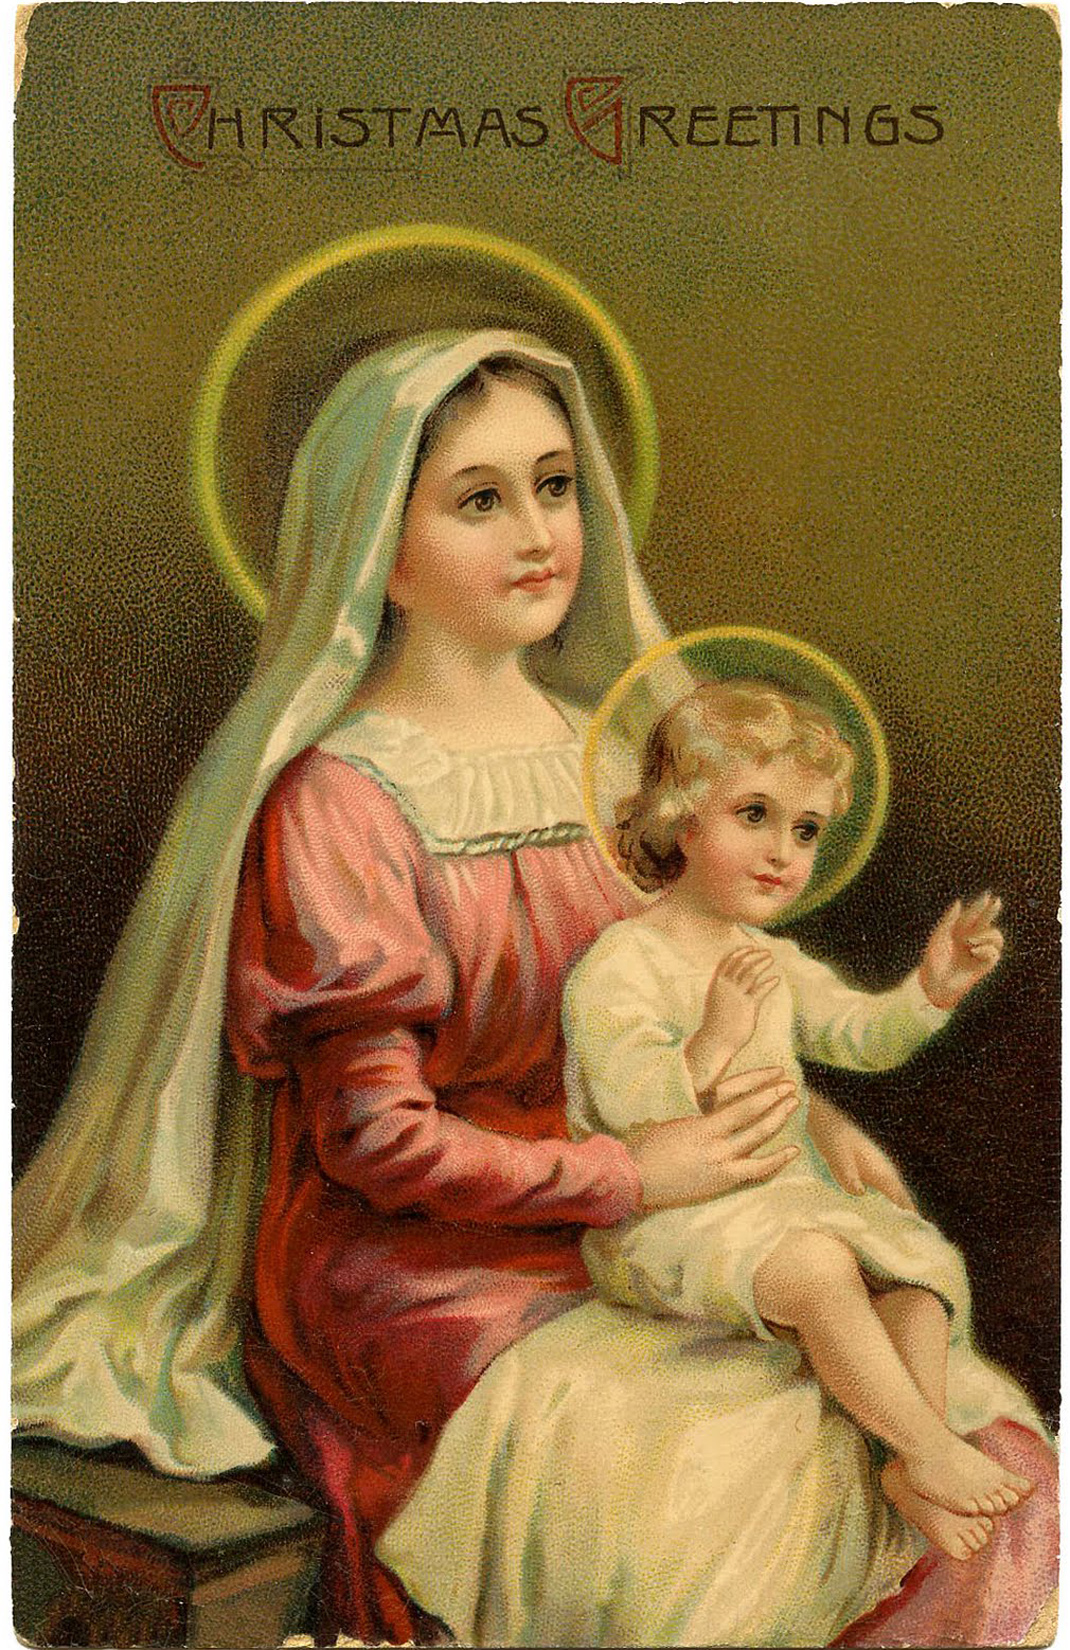 9 Vintage Madonna with Child Images! - The Graphics Fairy